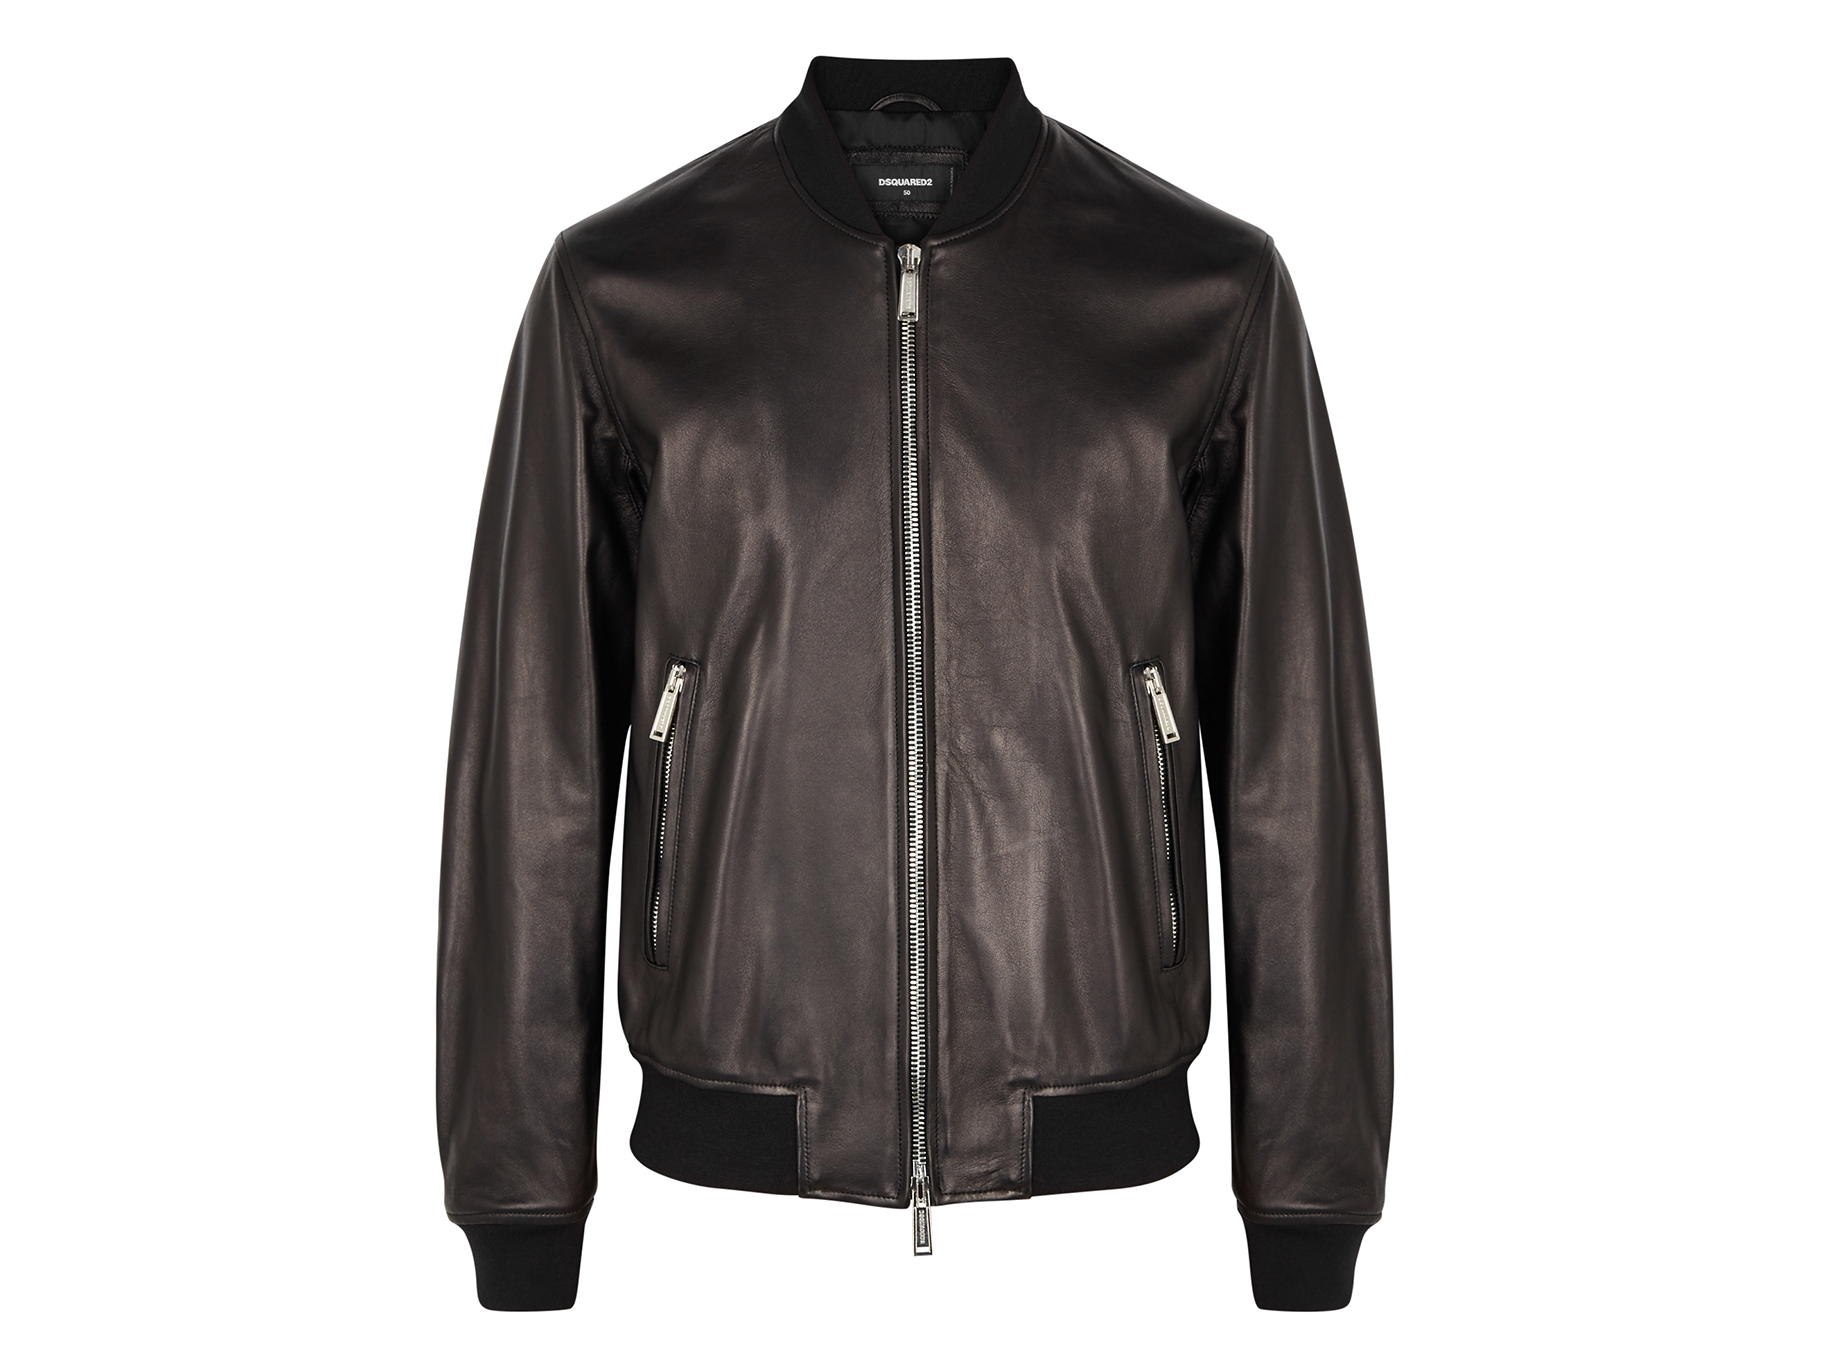 e4916362c Black leather bomber jacket